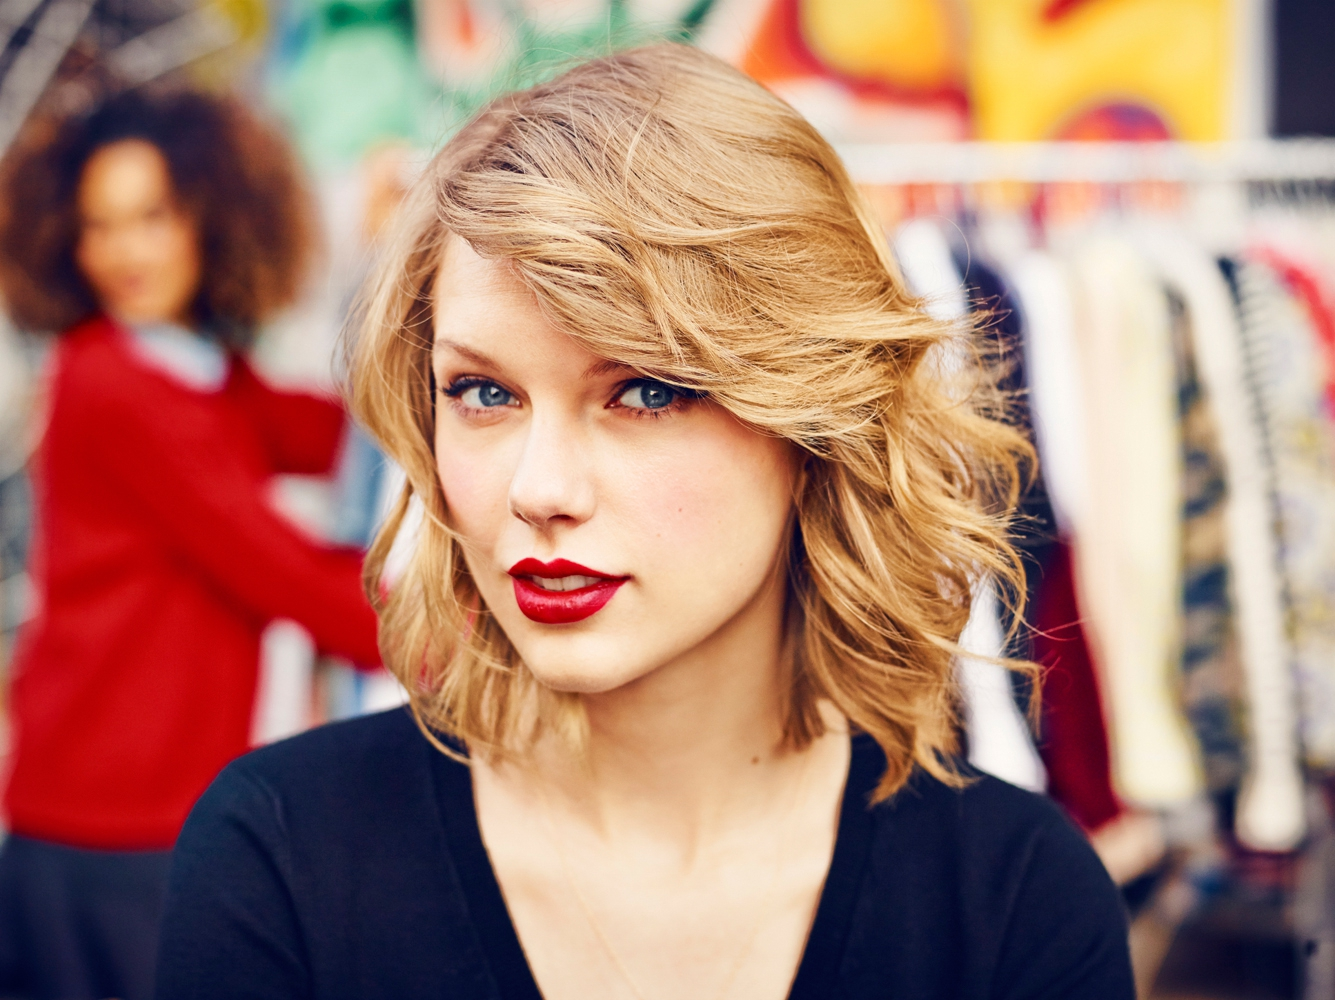 Taylor Swift Wallpapers & Bio